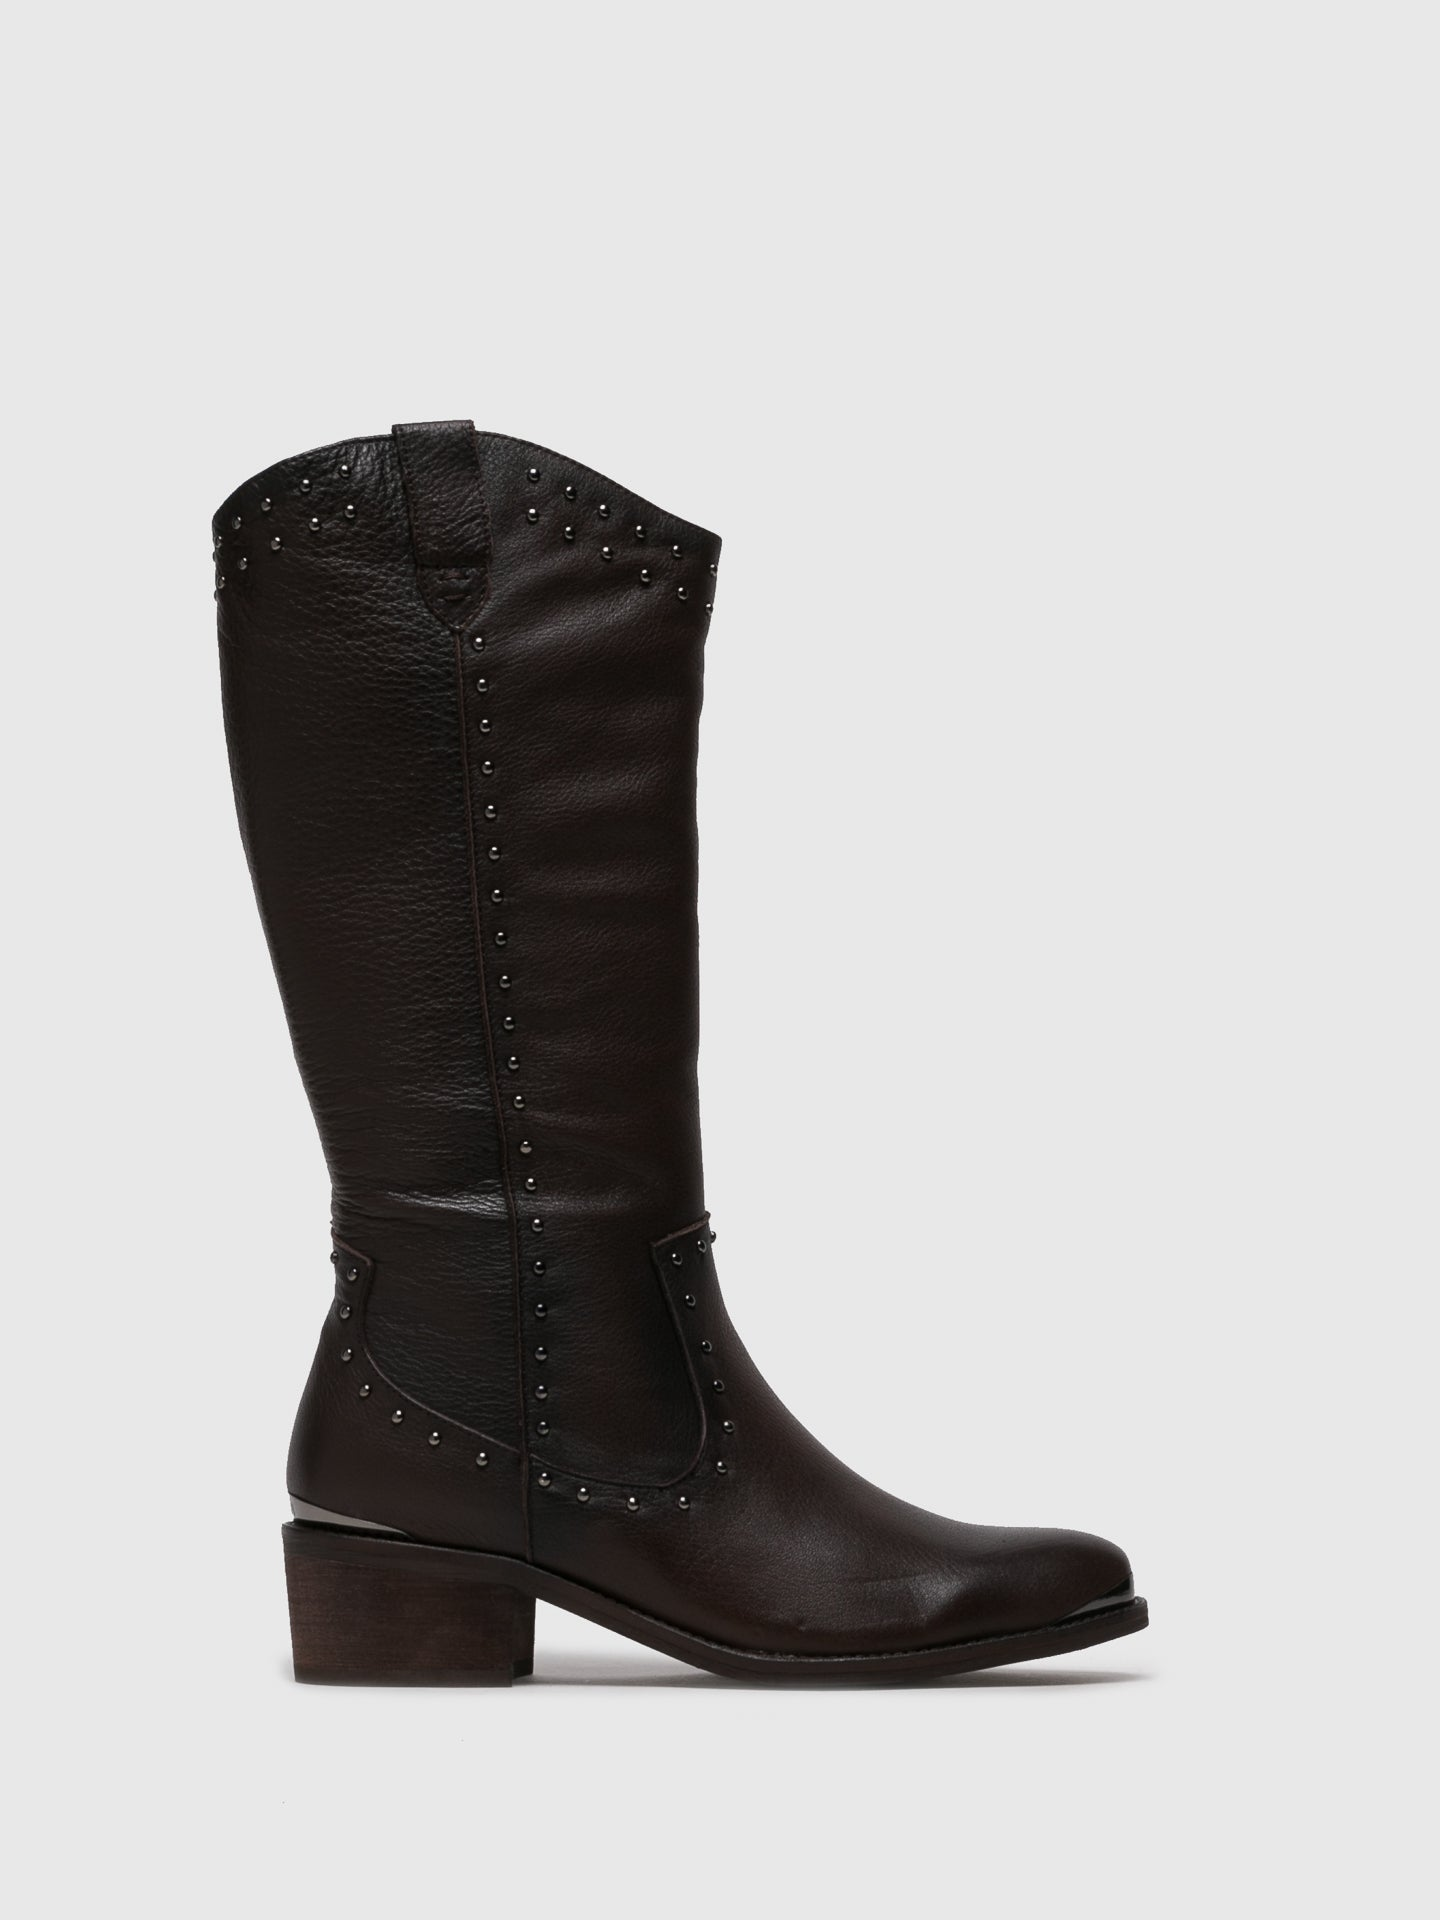 Carmela Brown Knee-High Boots